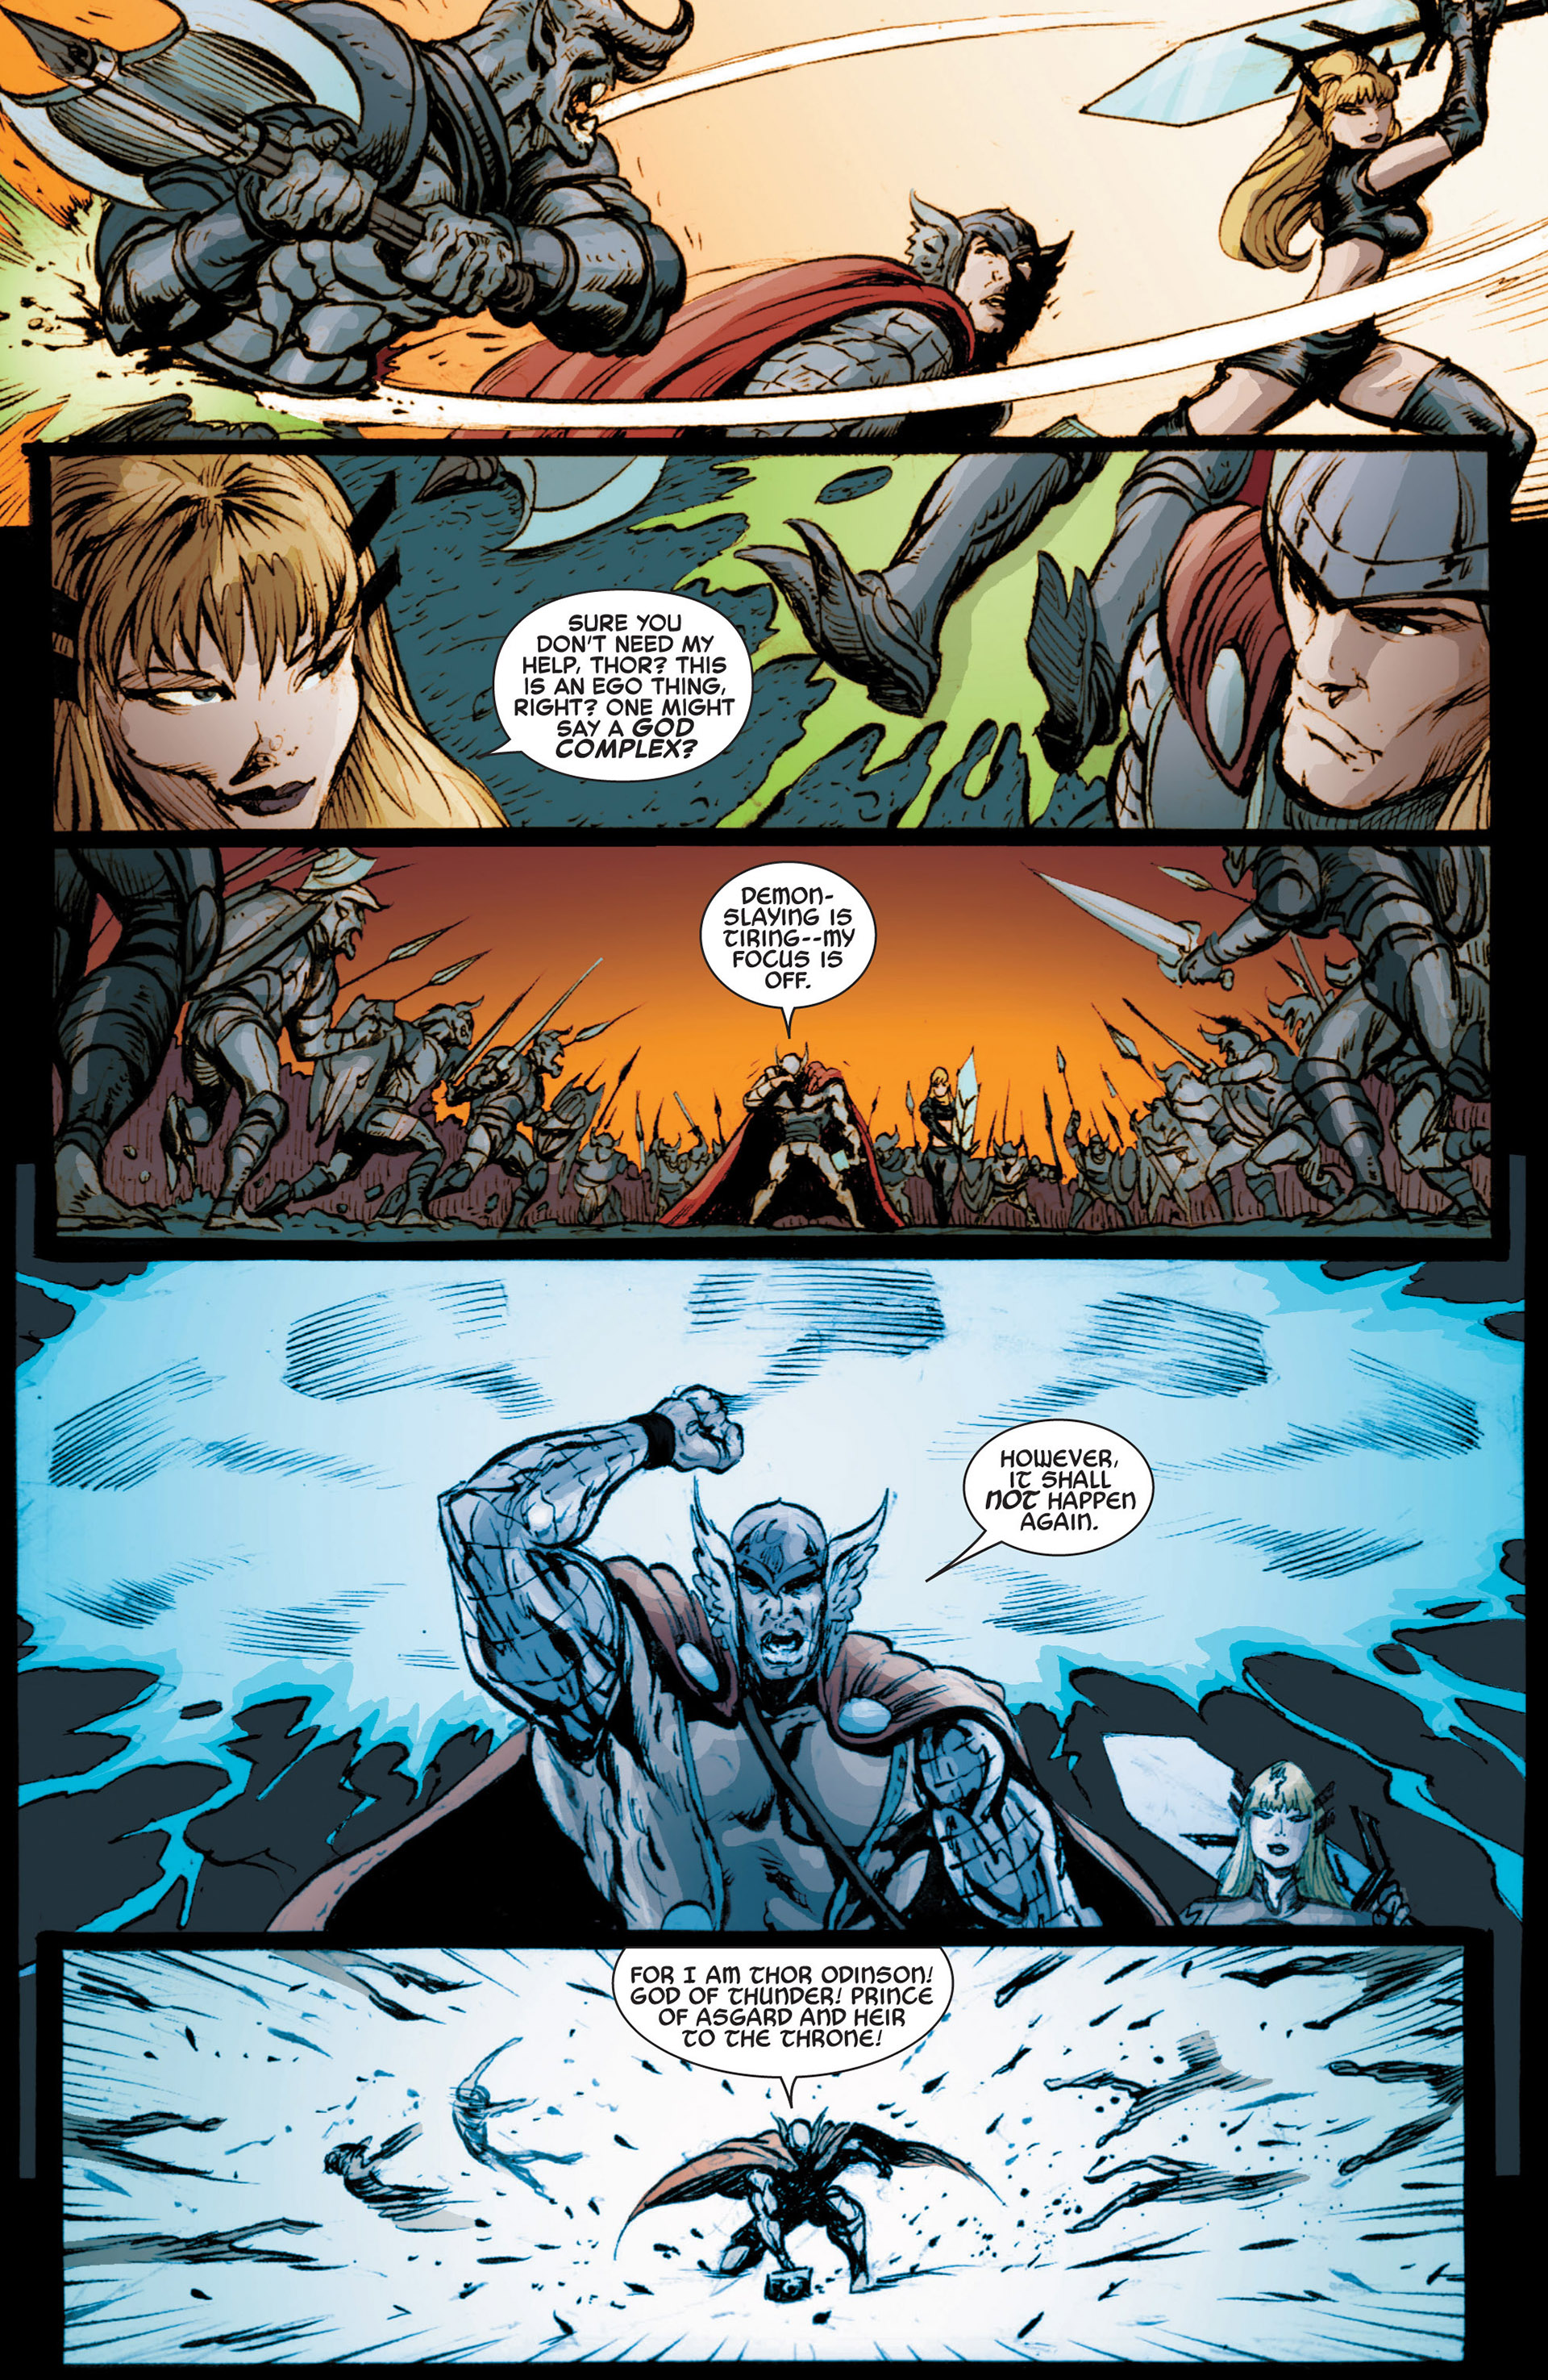 Read online A X comic -  Issue #11 - 7